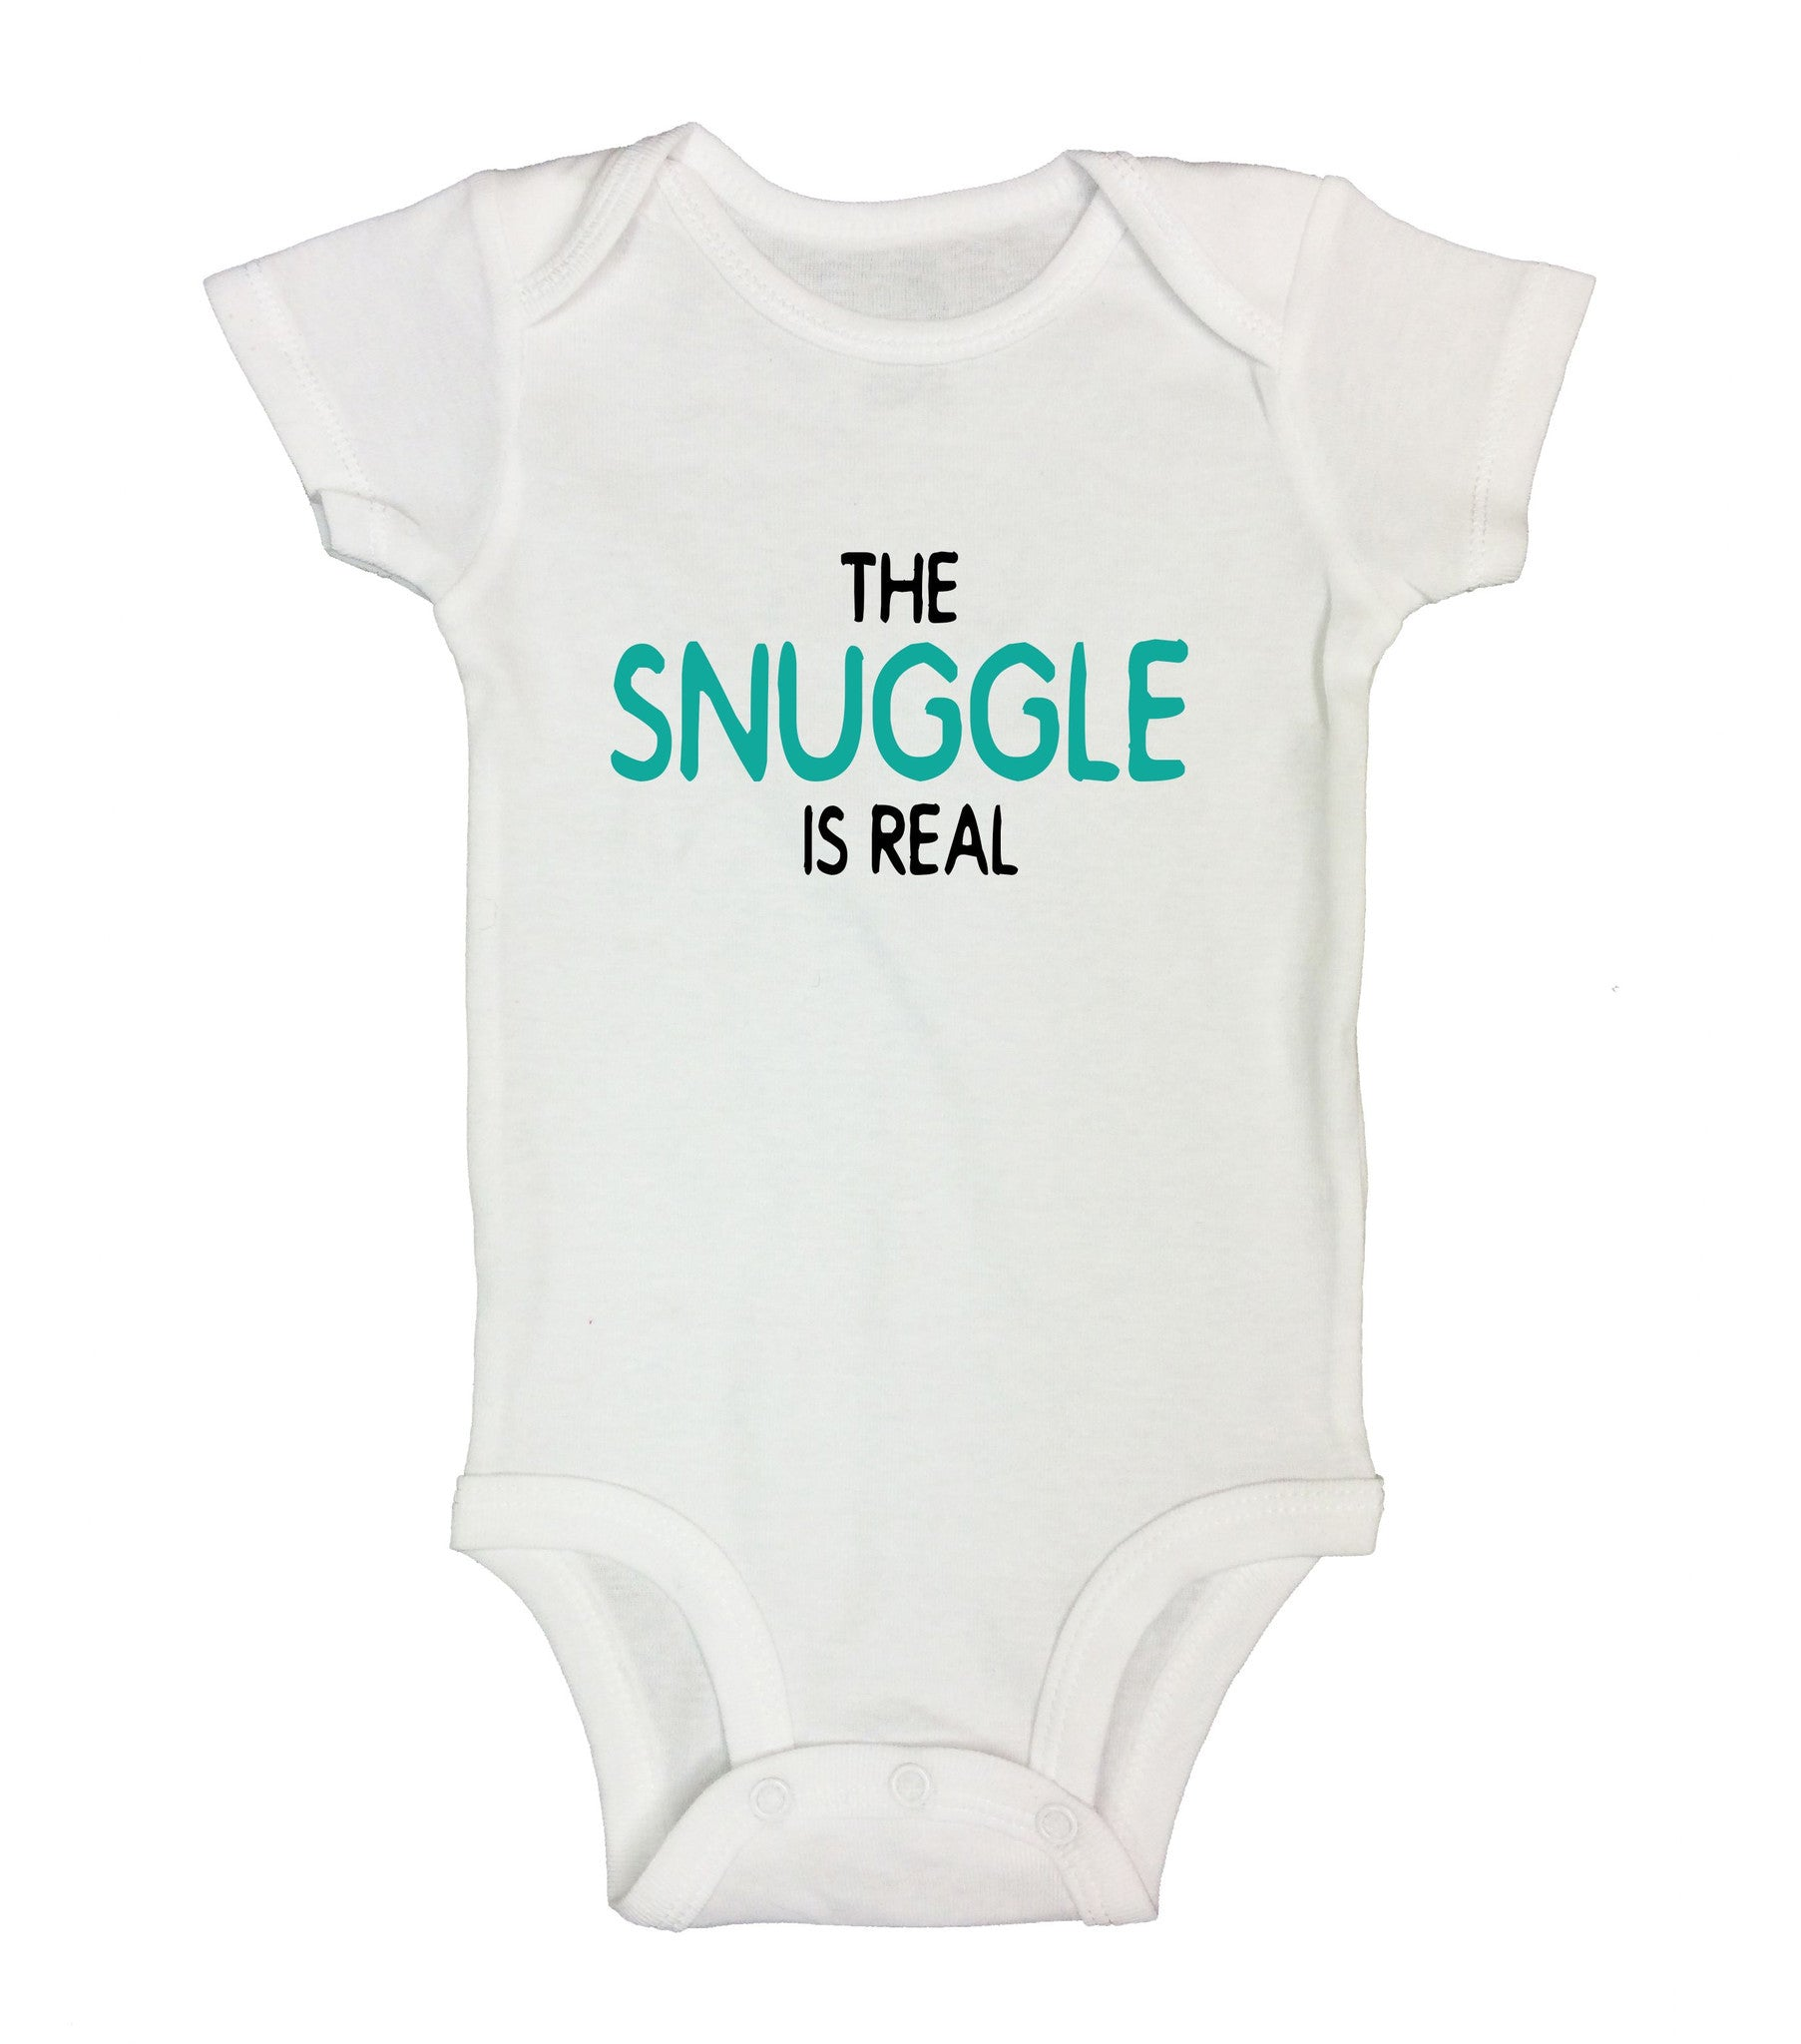 The Snuggle Is Real Funny Kids Onesie - B4 - Funny Shirts Tank Tops Burnouts and Triblends  - 2